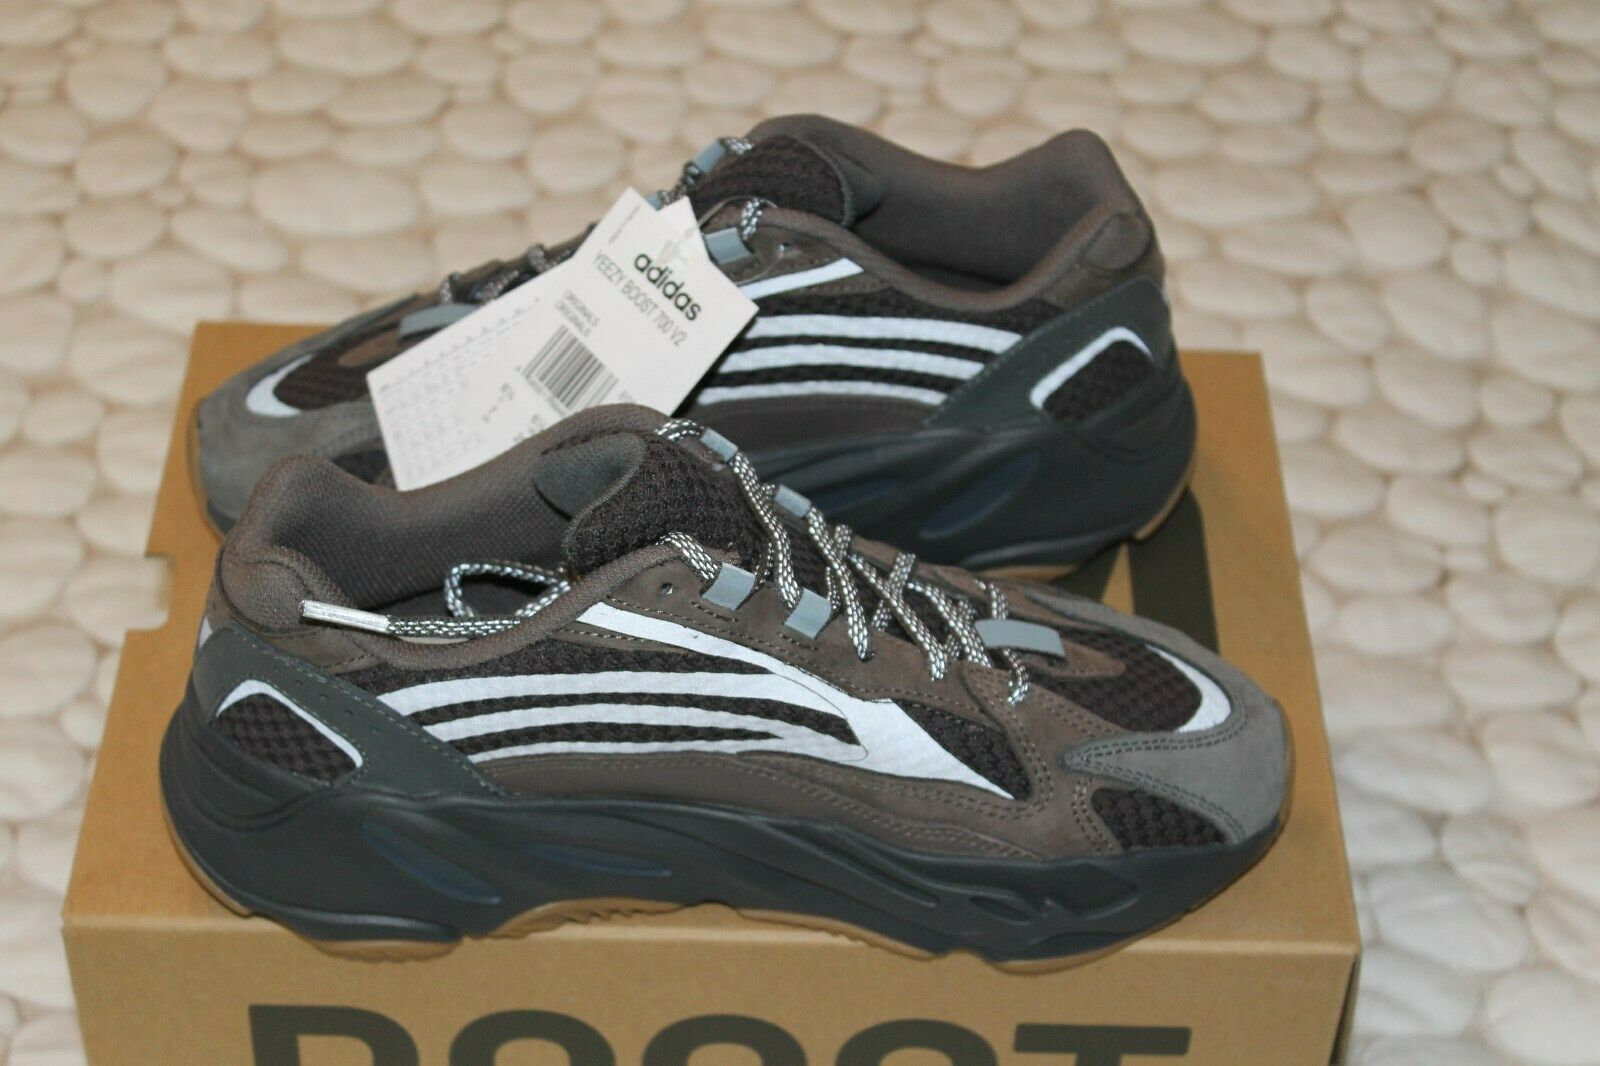 Adidas Yeezy Boost 700 V2 Geode EG6860 New Size 7 100% authentic